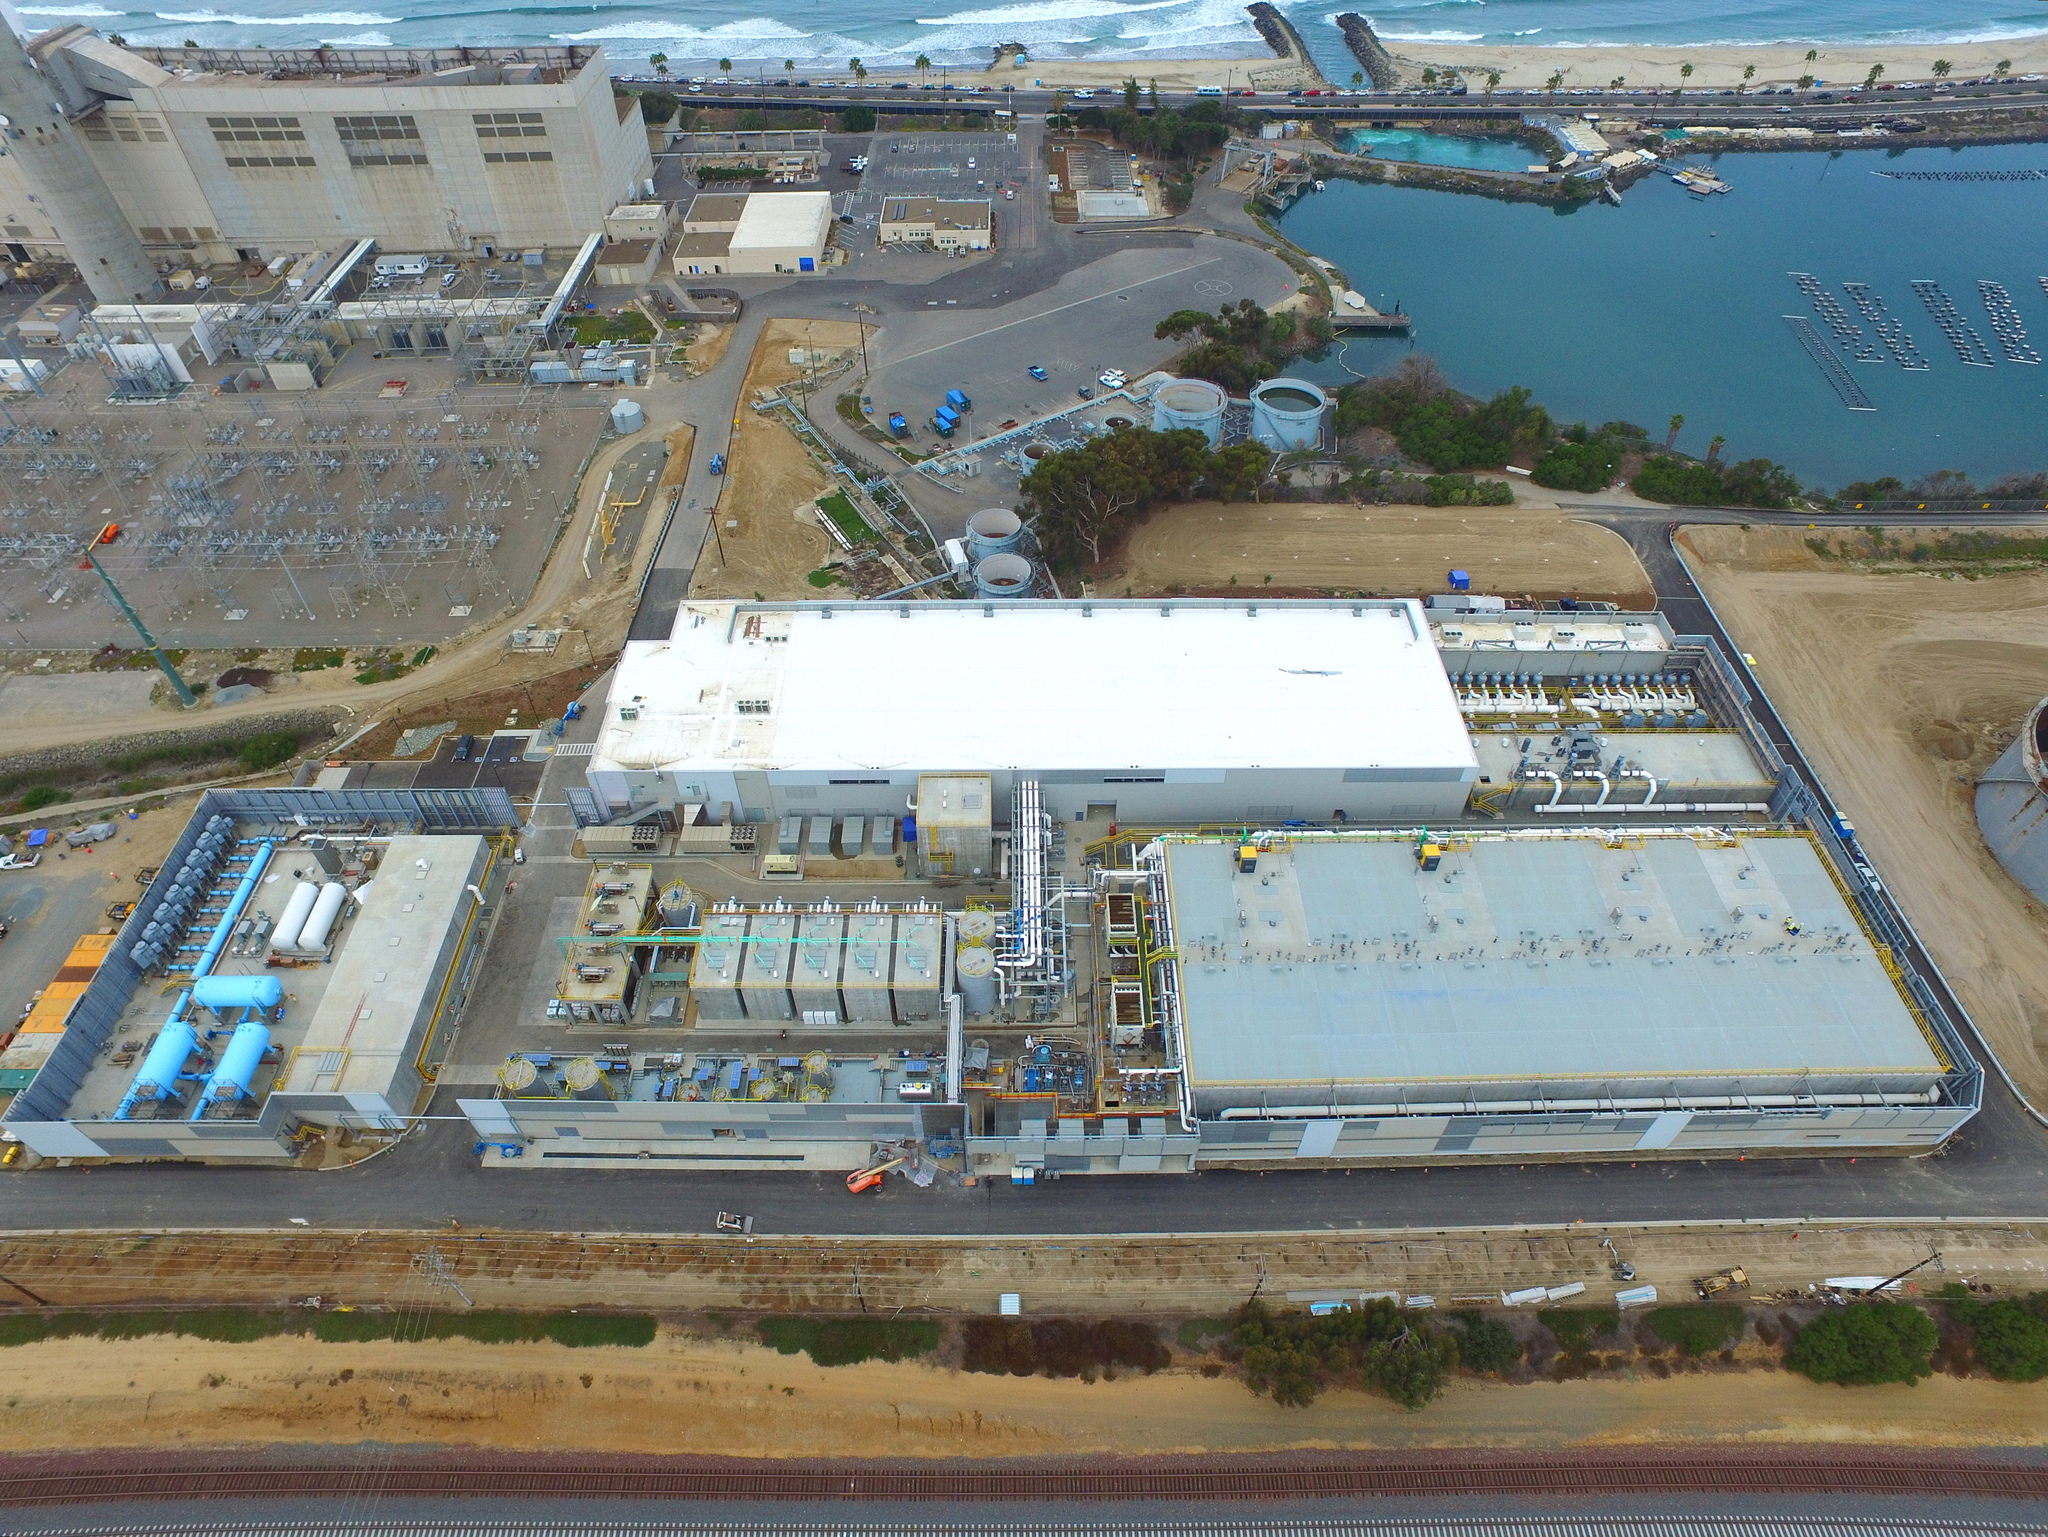 The Carlsbad Desalination Plant in Carlsbad, CA, just north of San Diego, is the largest seawater desalination plant in the Western hemisphere and the latest one to come online worldwide.